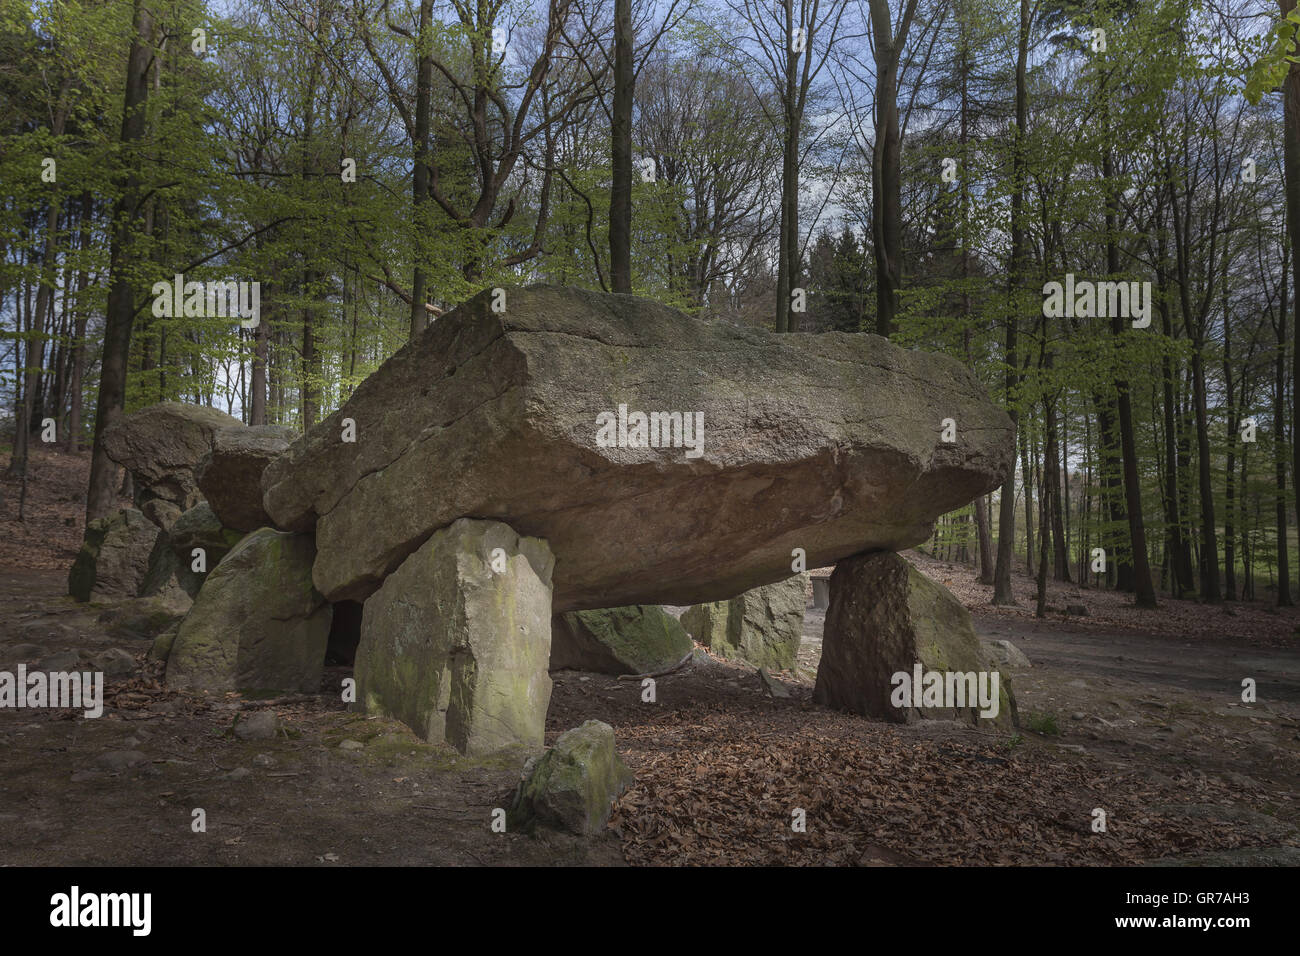 Neolithic Passage Grave, Megalithic Stones In Osnabrueck-Haste, Osnabrueck Country, Germany - Stock Image